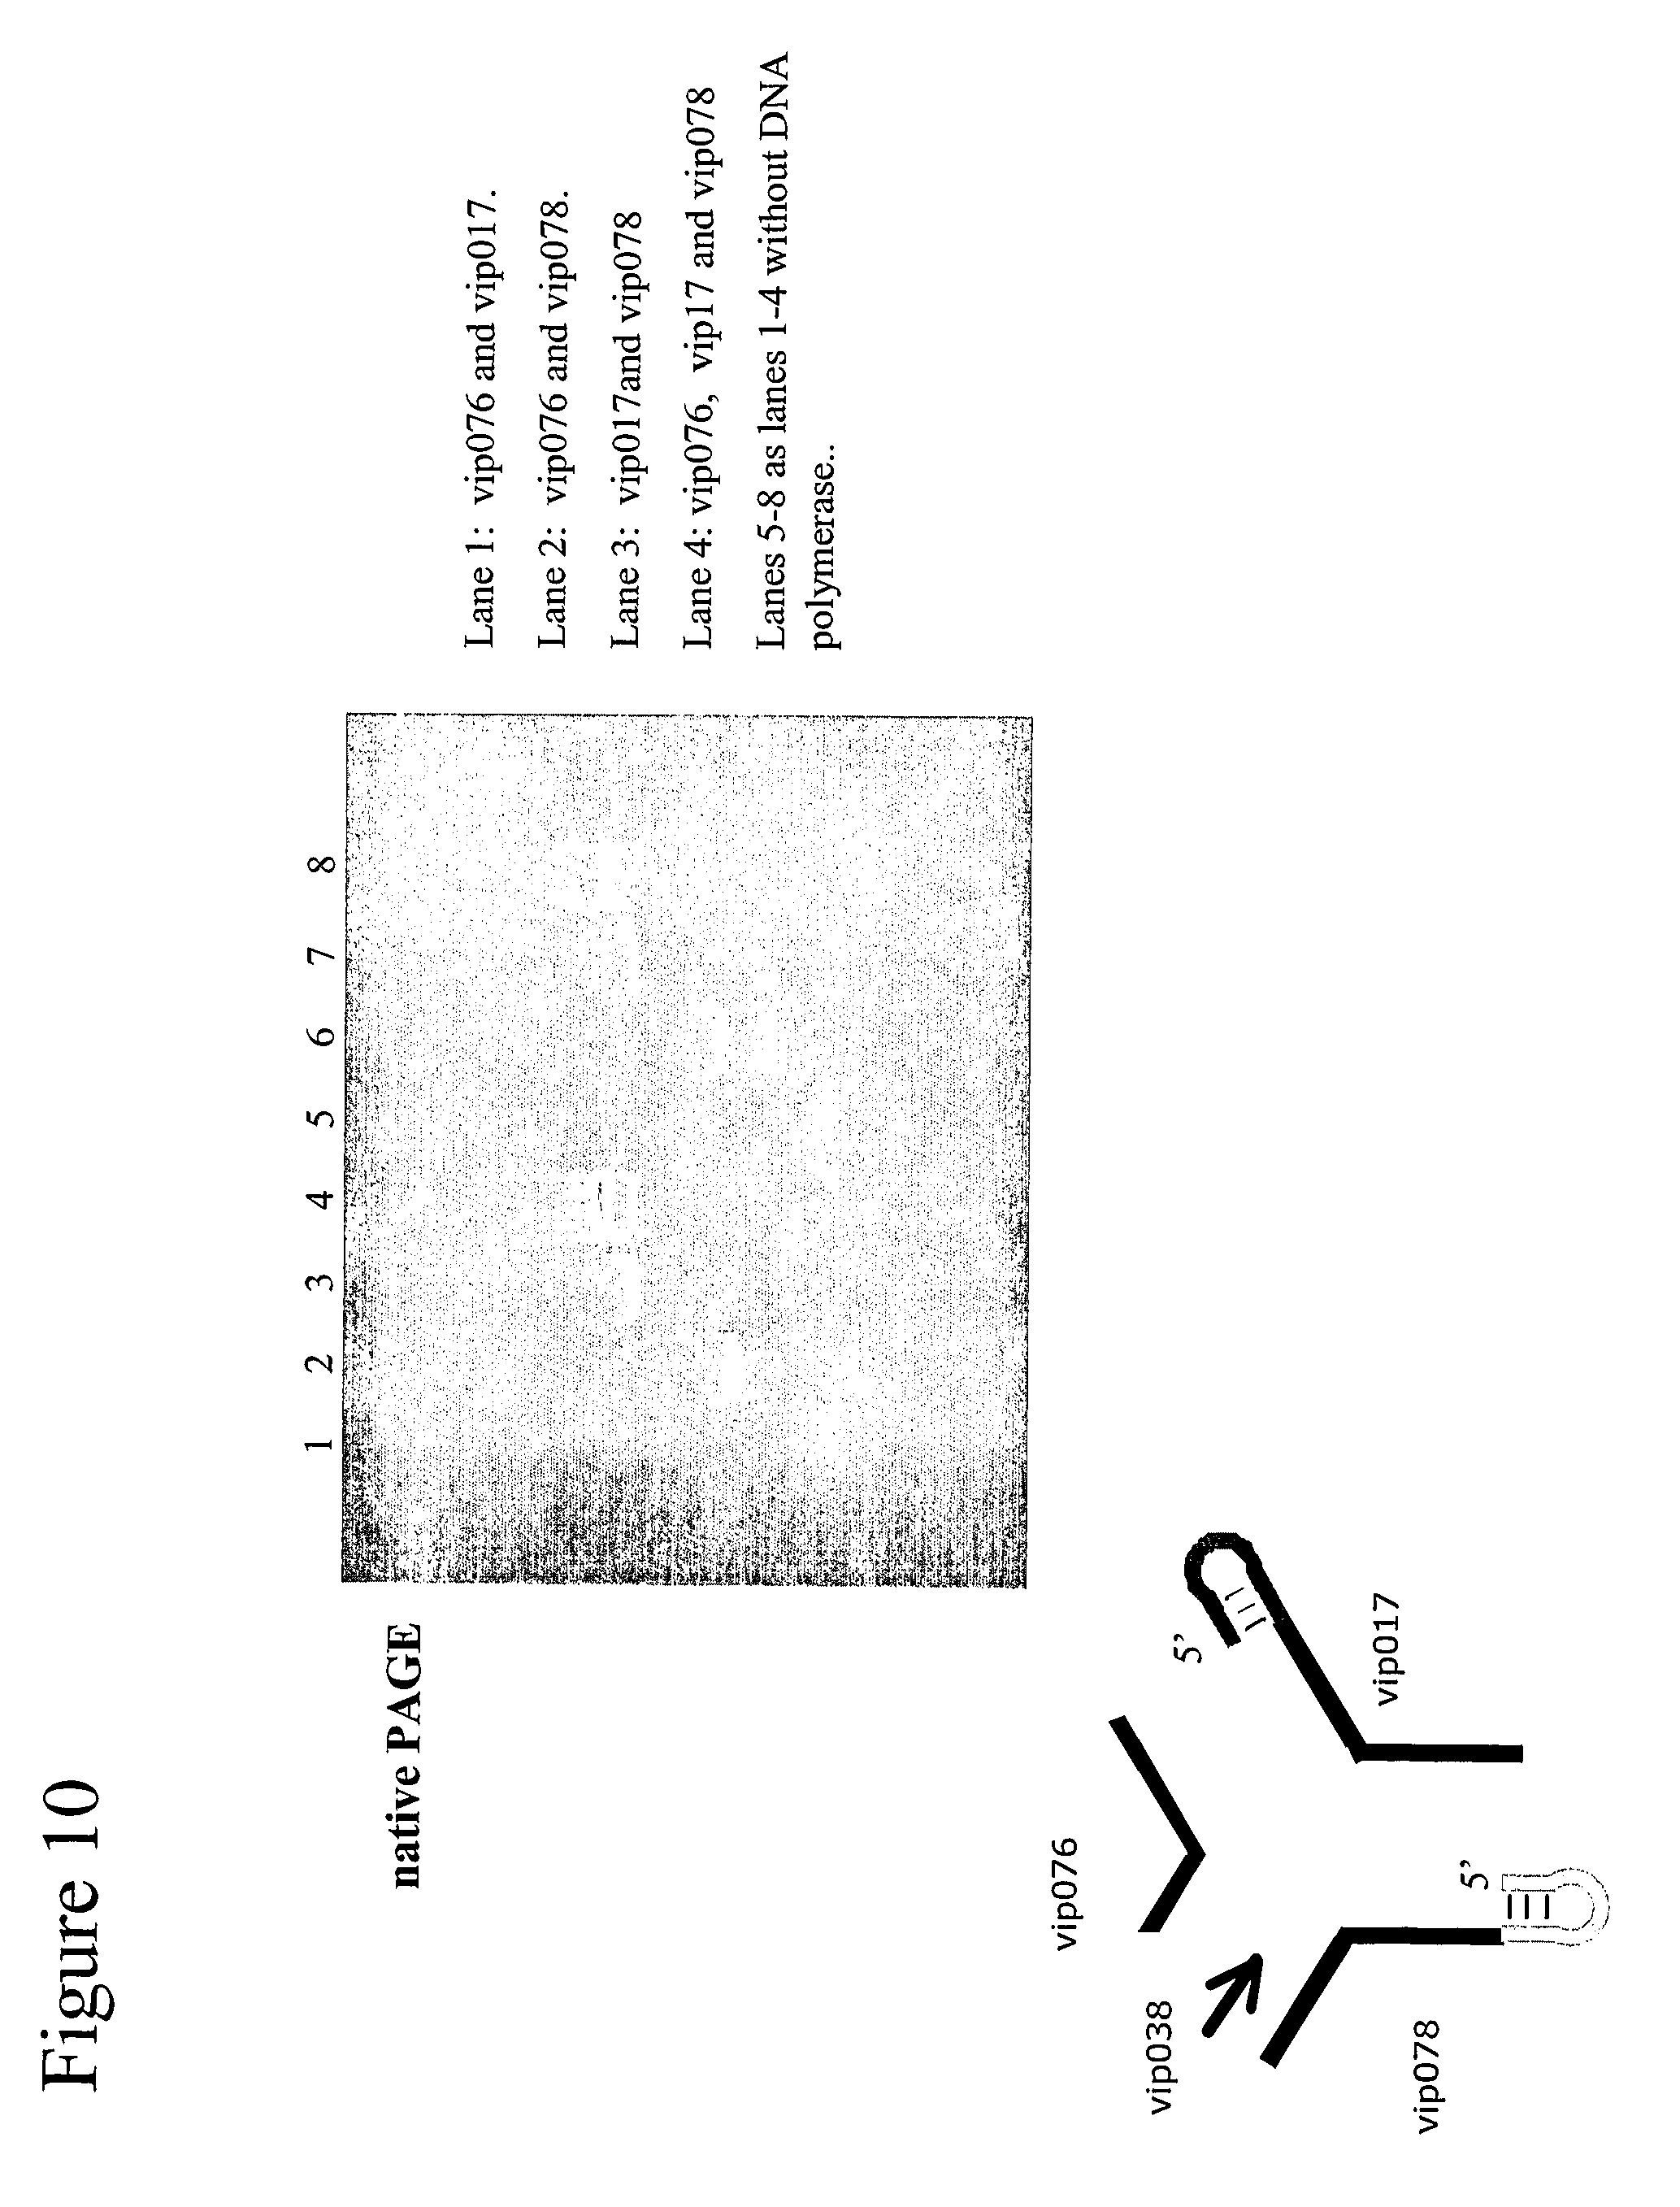 US8202823B2 - Structural nucleic acid guided chemical